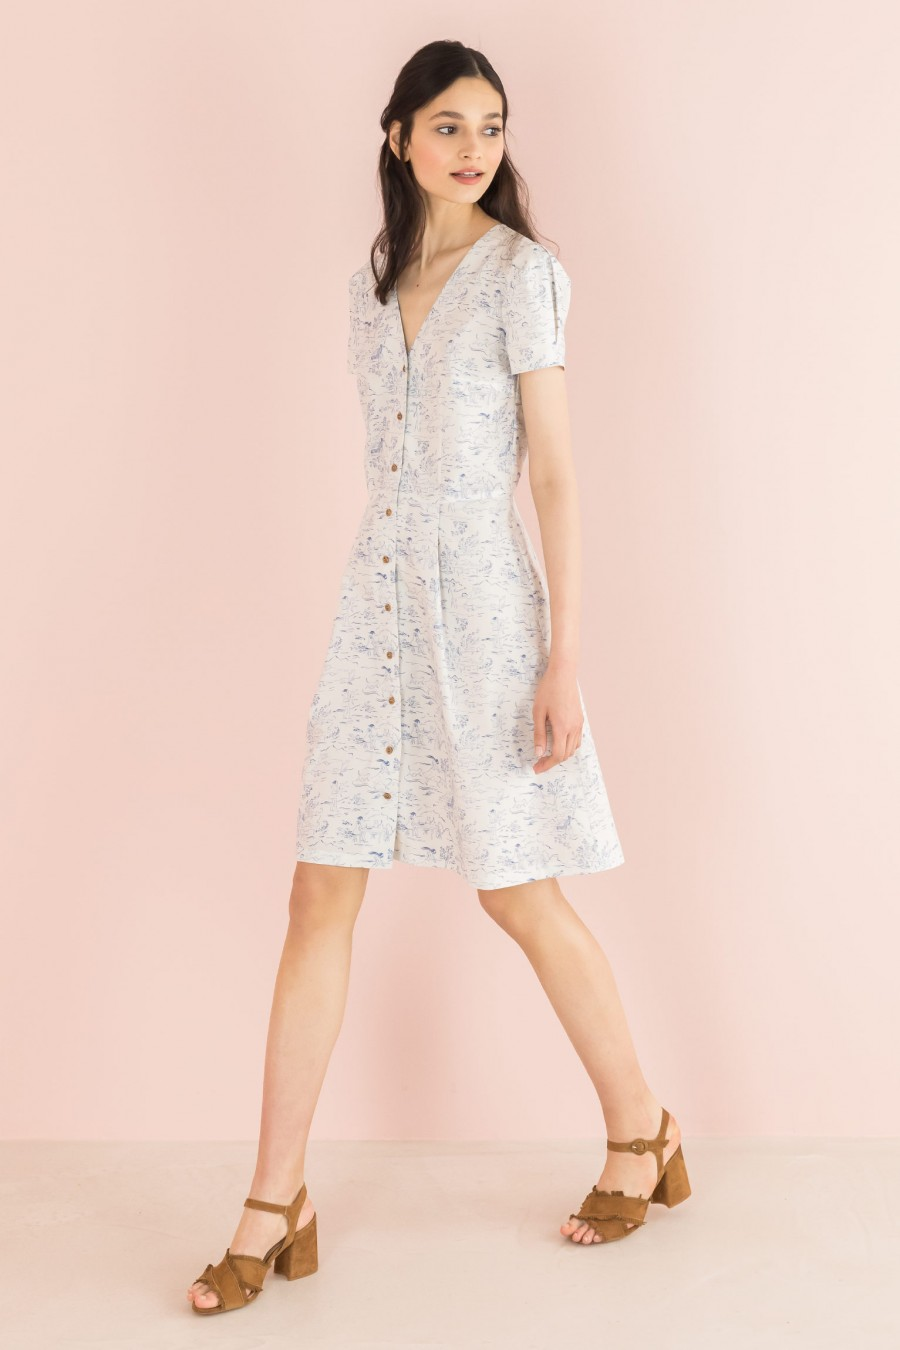 shirt-dress with deep neckline and short sleeves